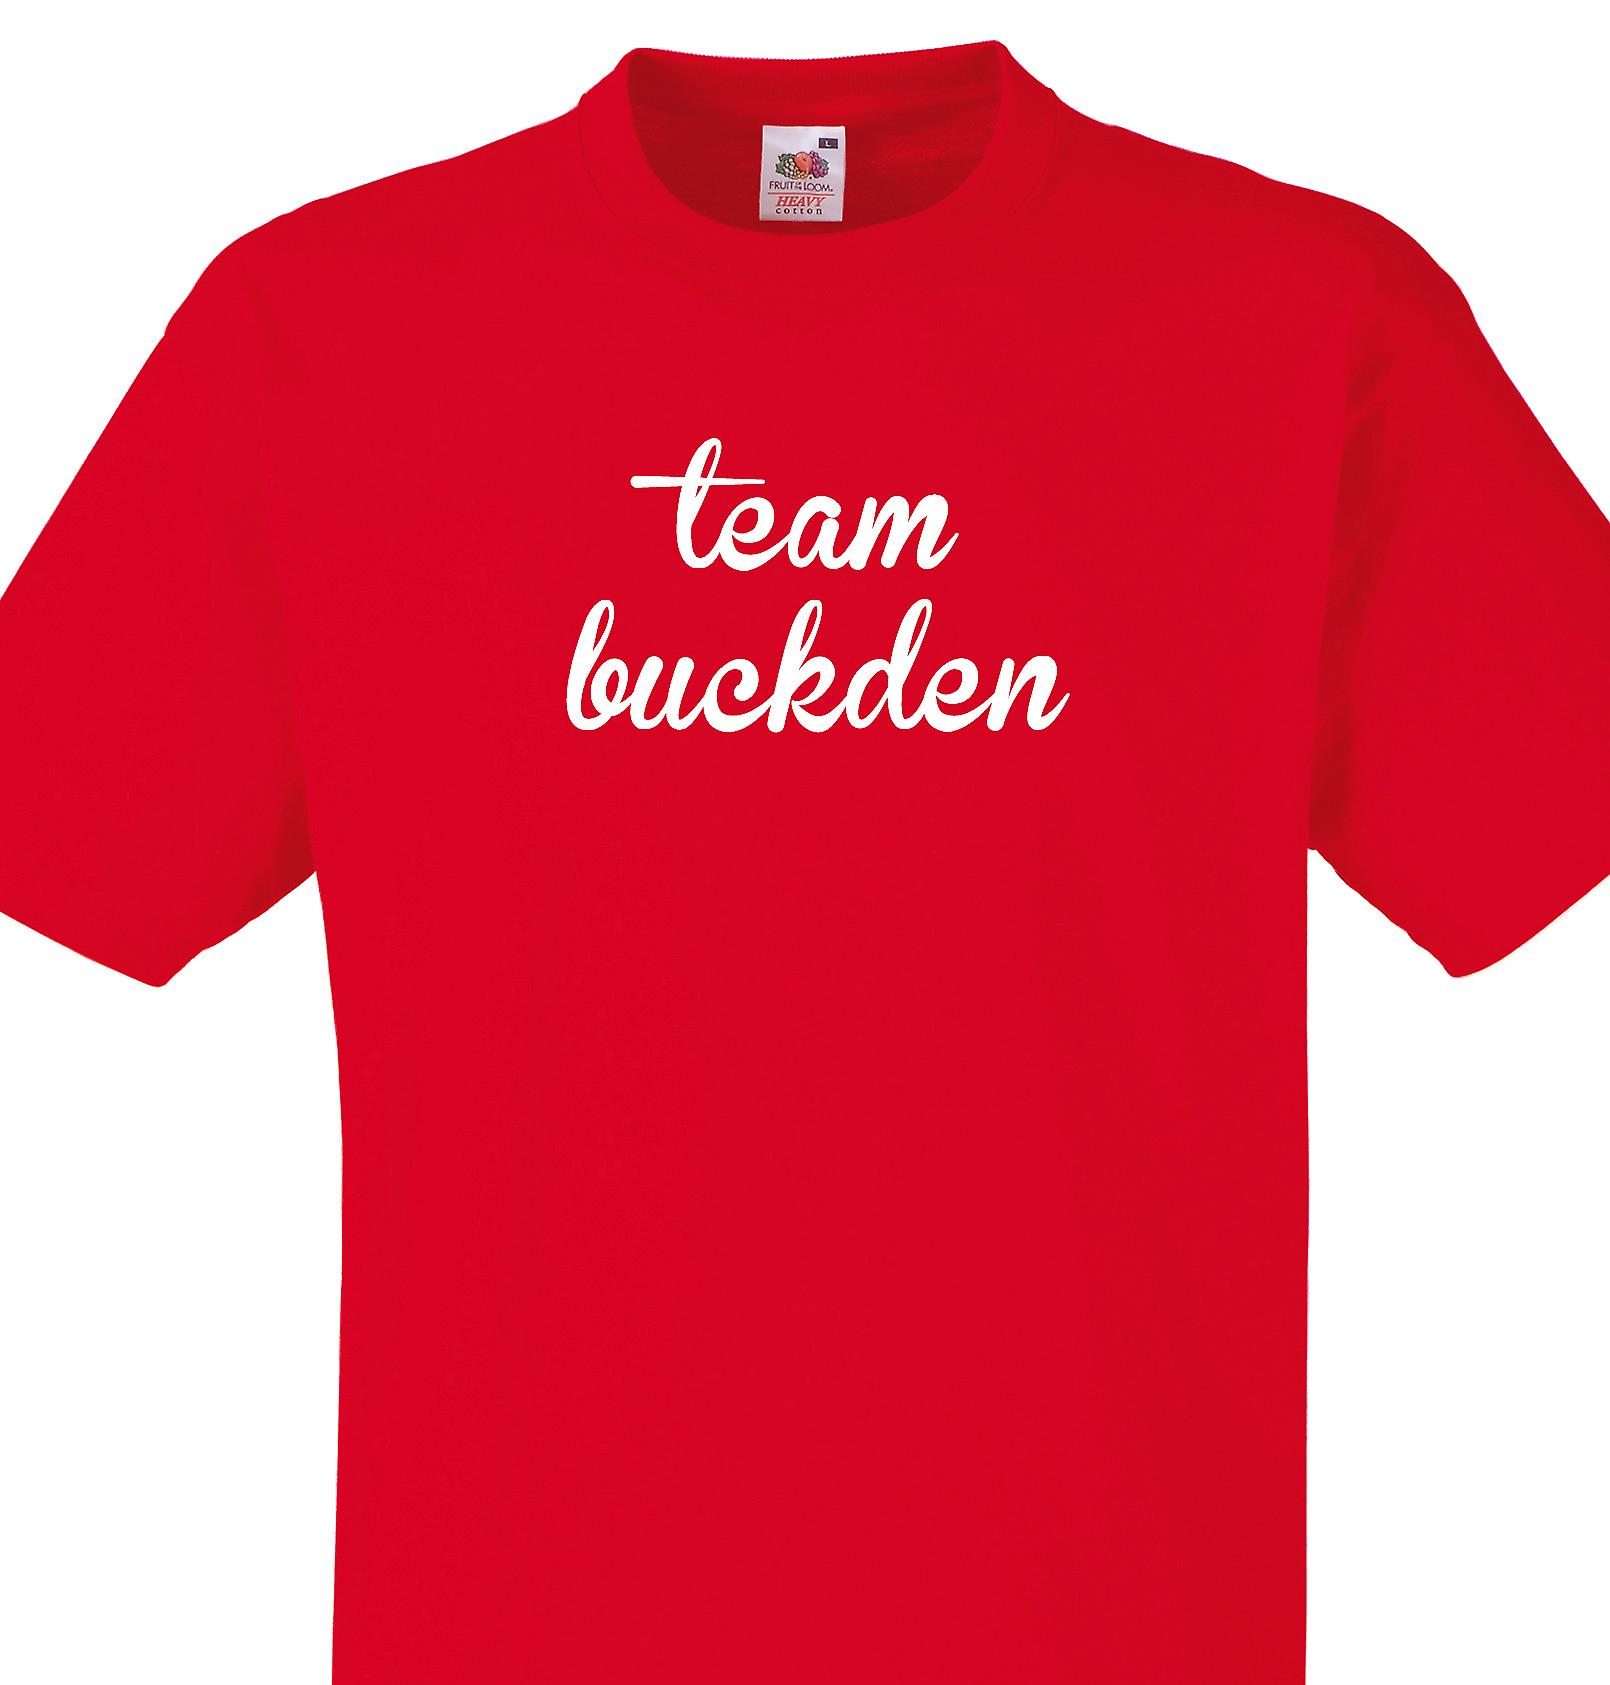 Team Buckden Red T shirt